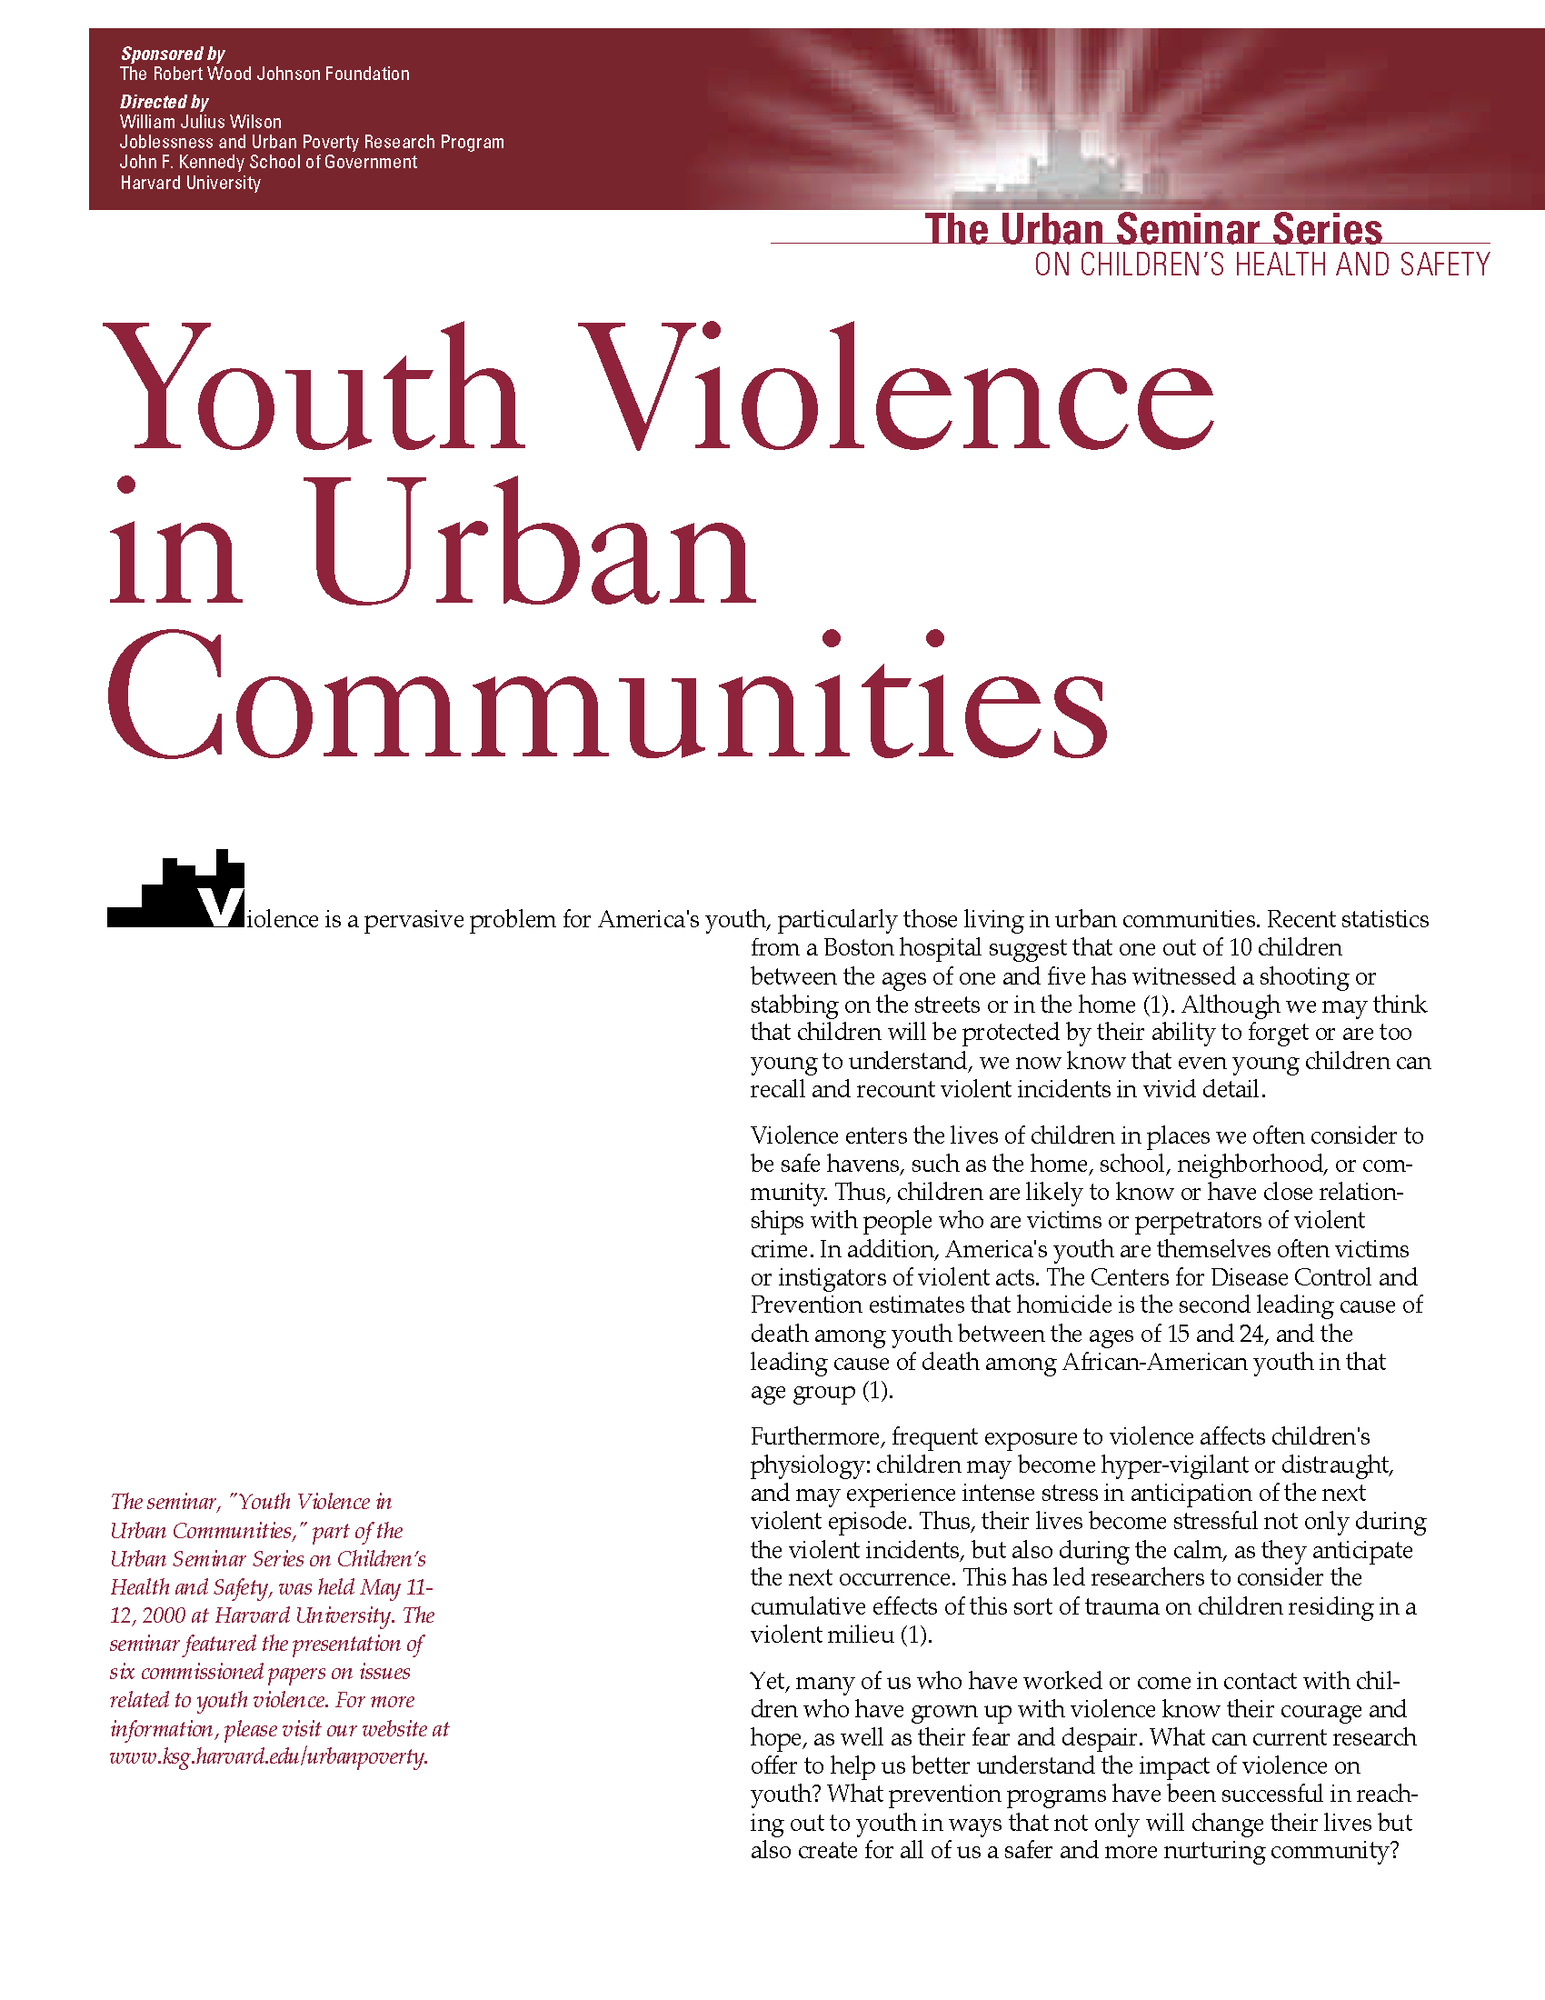 Youth Violence in Urban Communities, May 2000